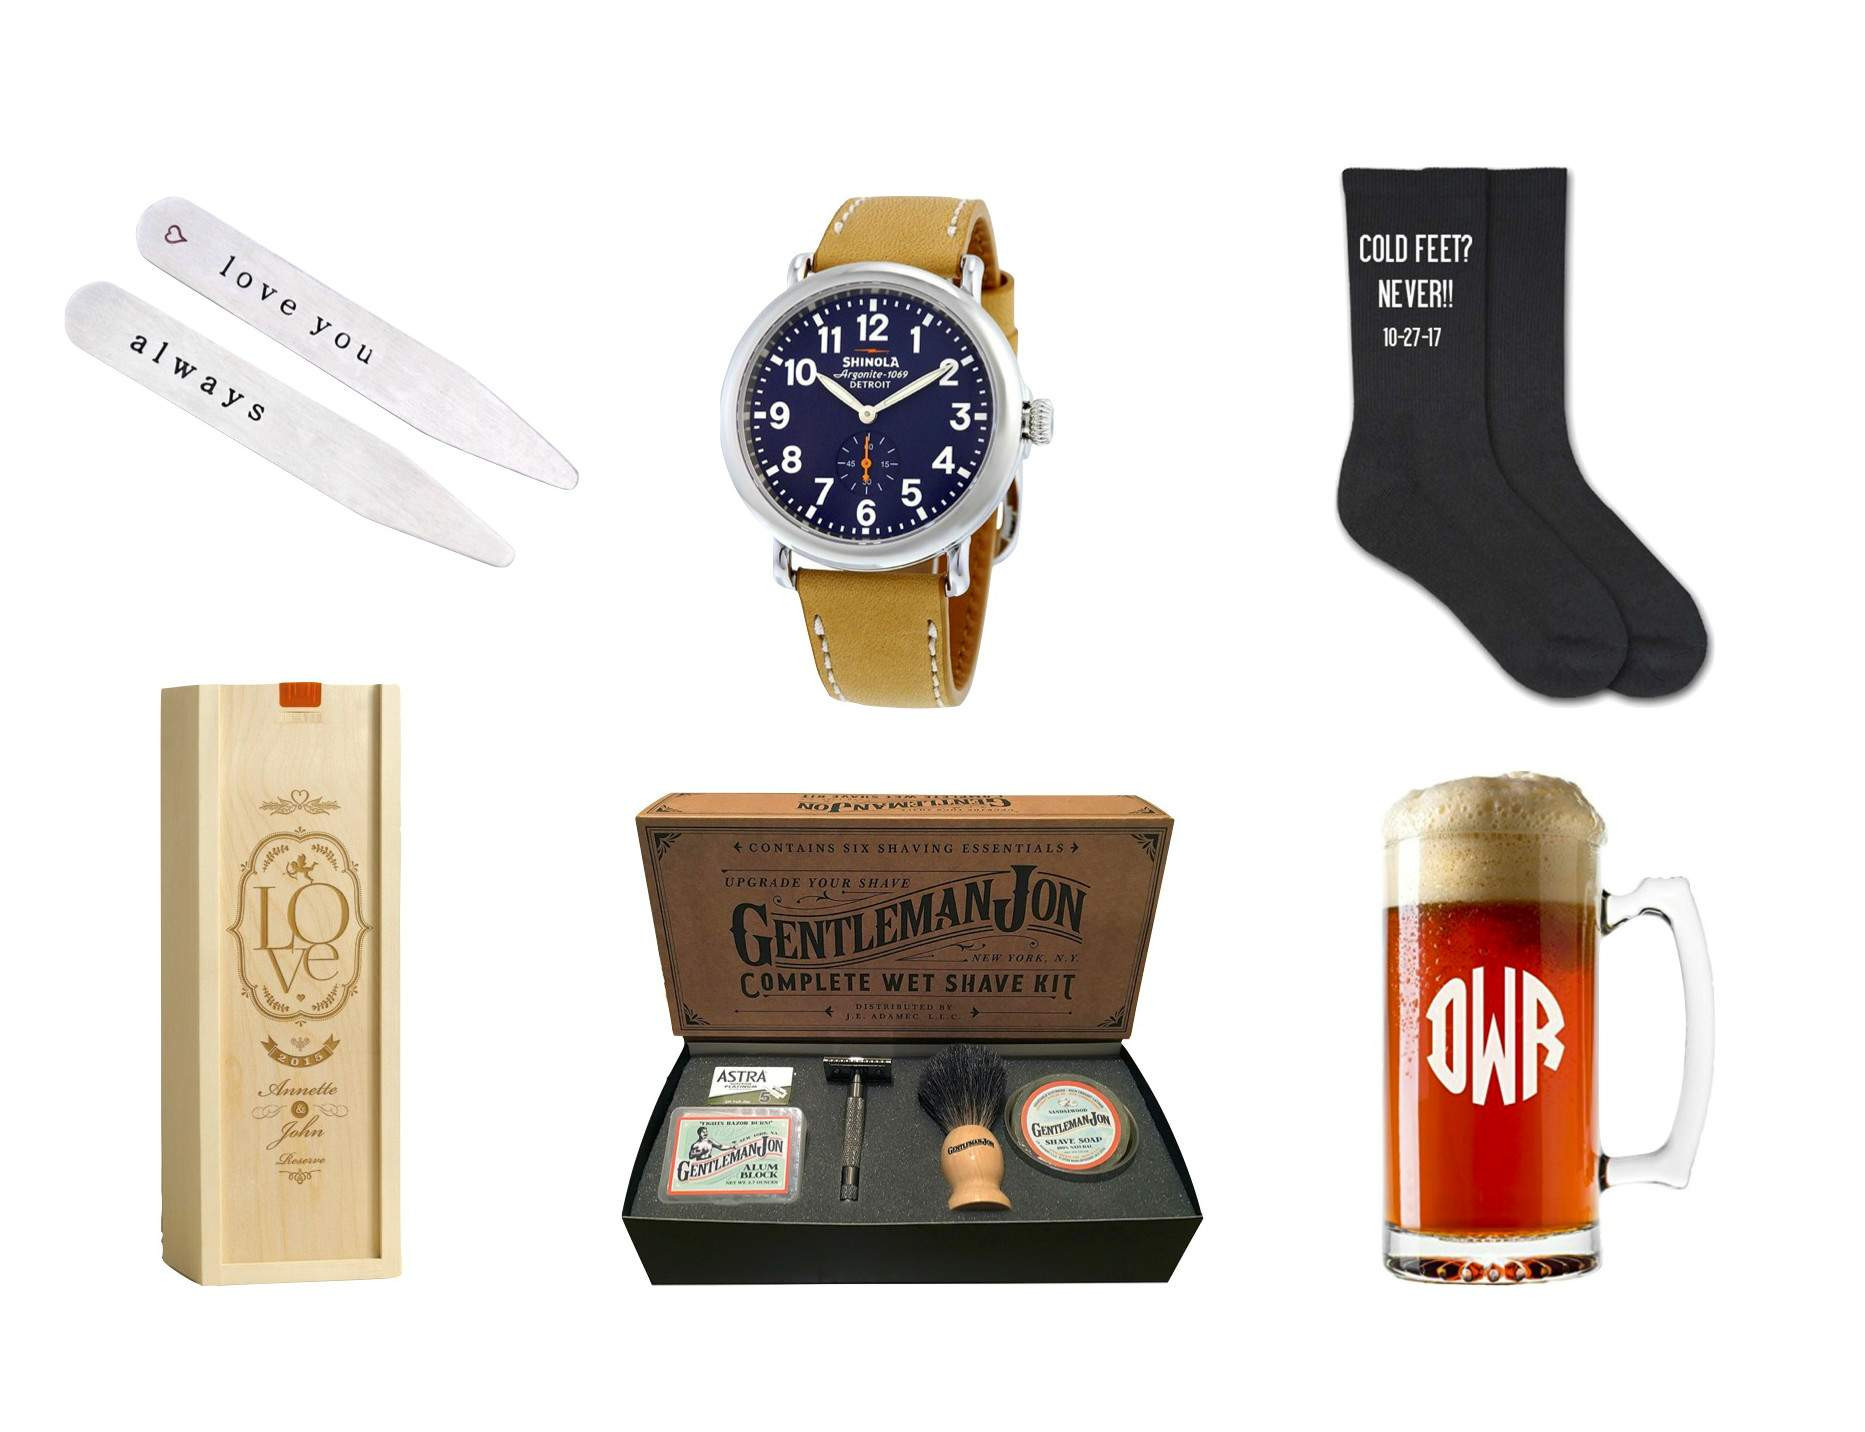 Best ideas about Groom To Bride Wedding Gift Ideas . Save or Pin Best Wedding Day Gift Ideas From the Bride to the Groom Now.